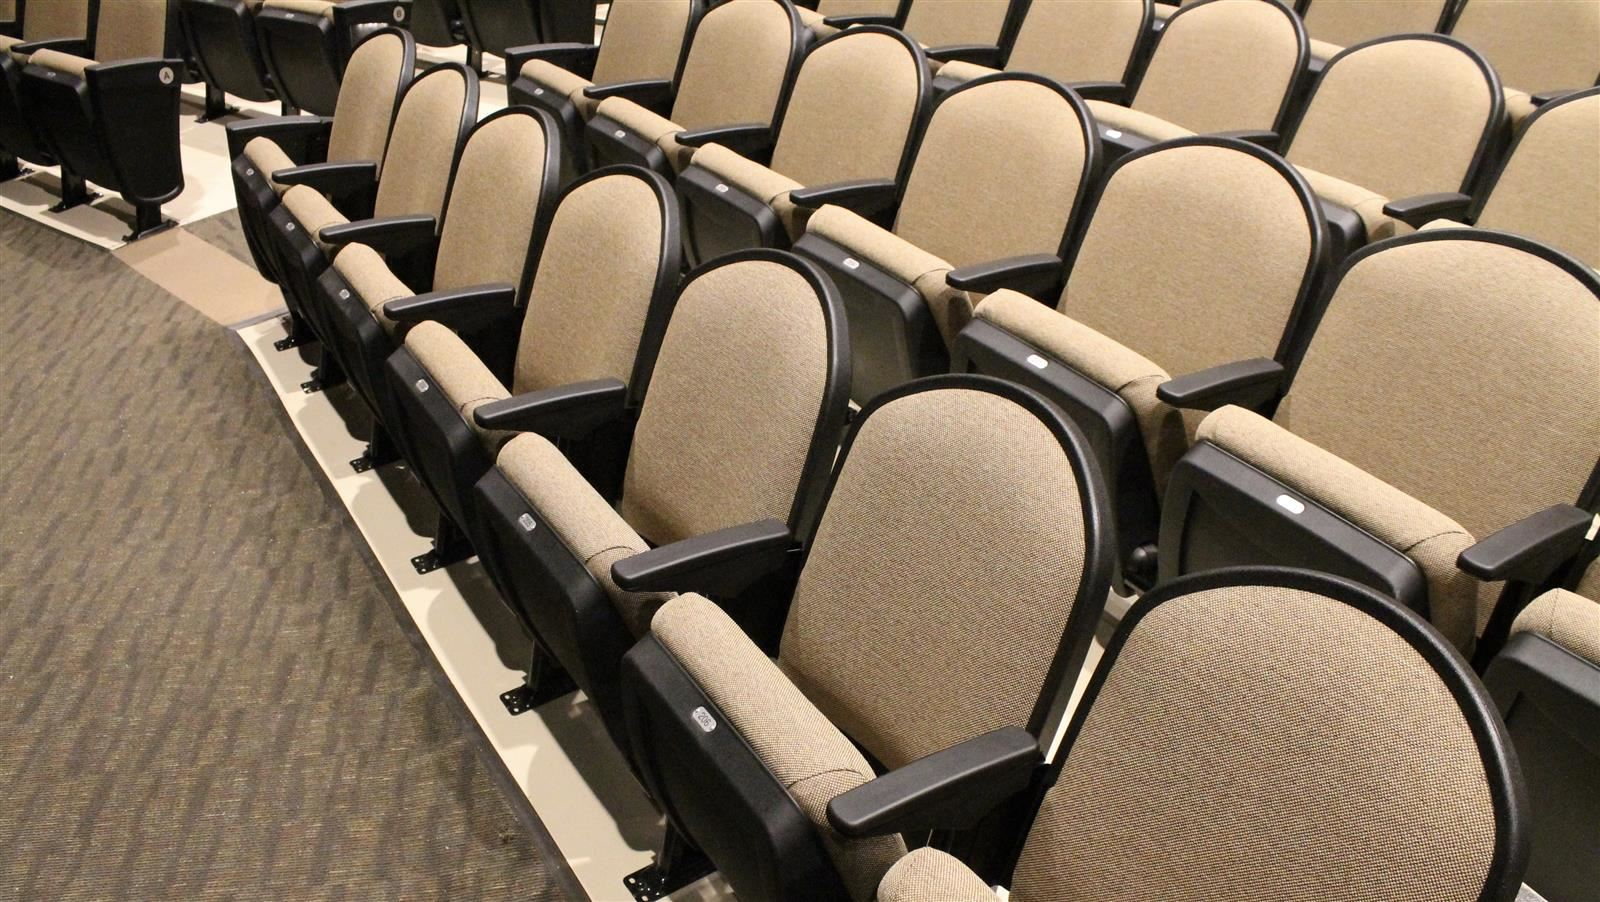 new chairs in the auditorium